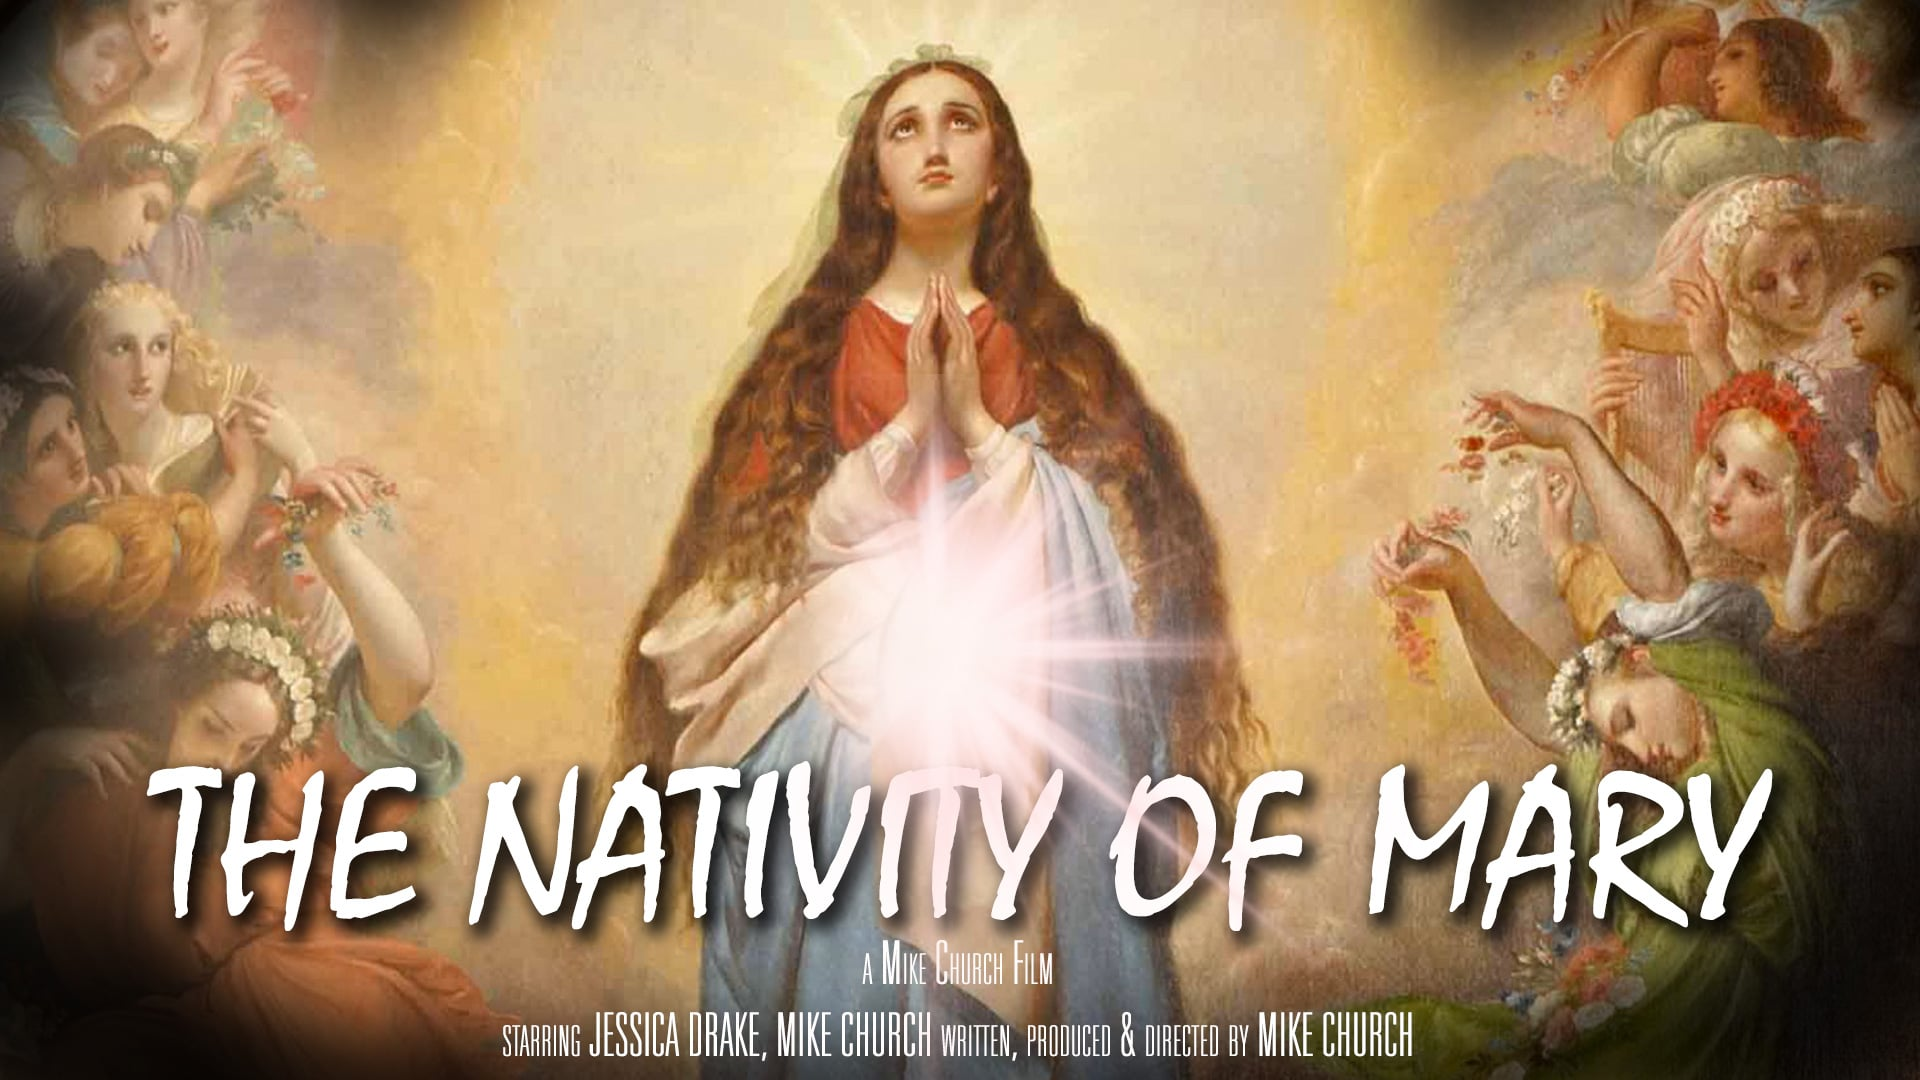 The Nativity of Mary-An Original Mike Church Feature